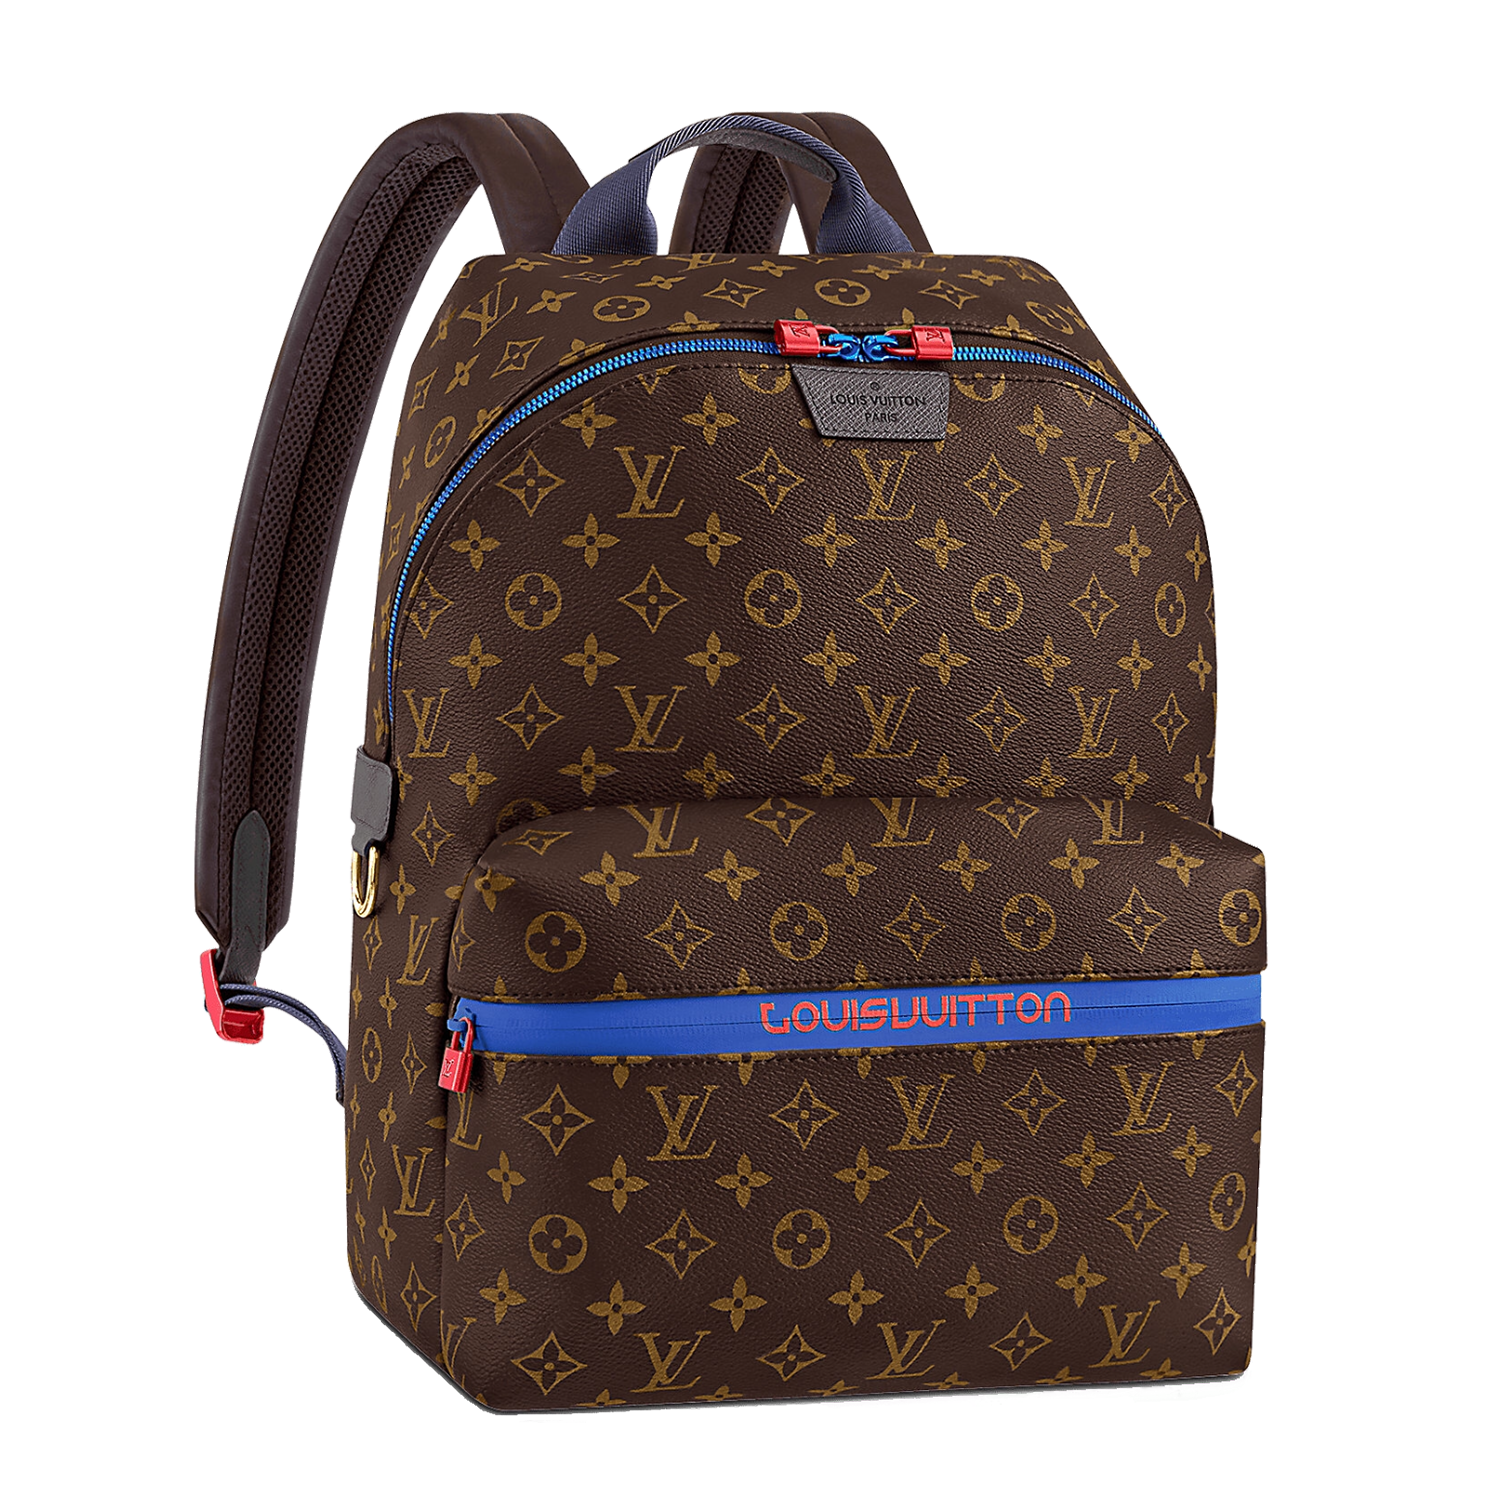 SS 18 APOLLO BACKPACK - €1750 $2360M43849MONOGRAM OUTDOOR